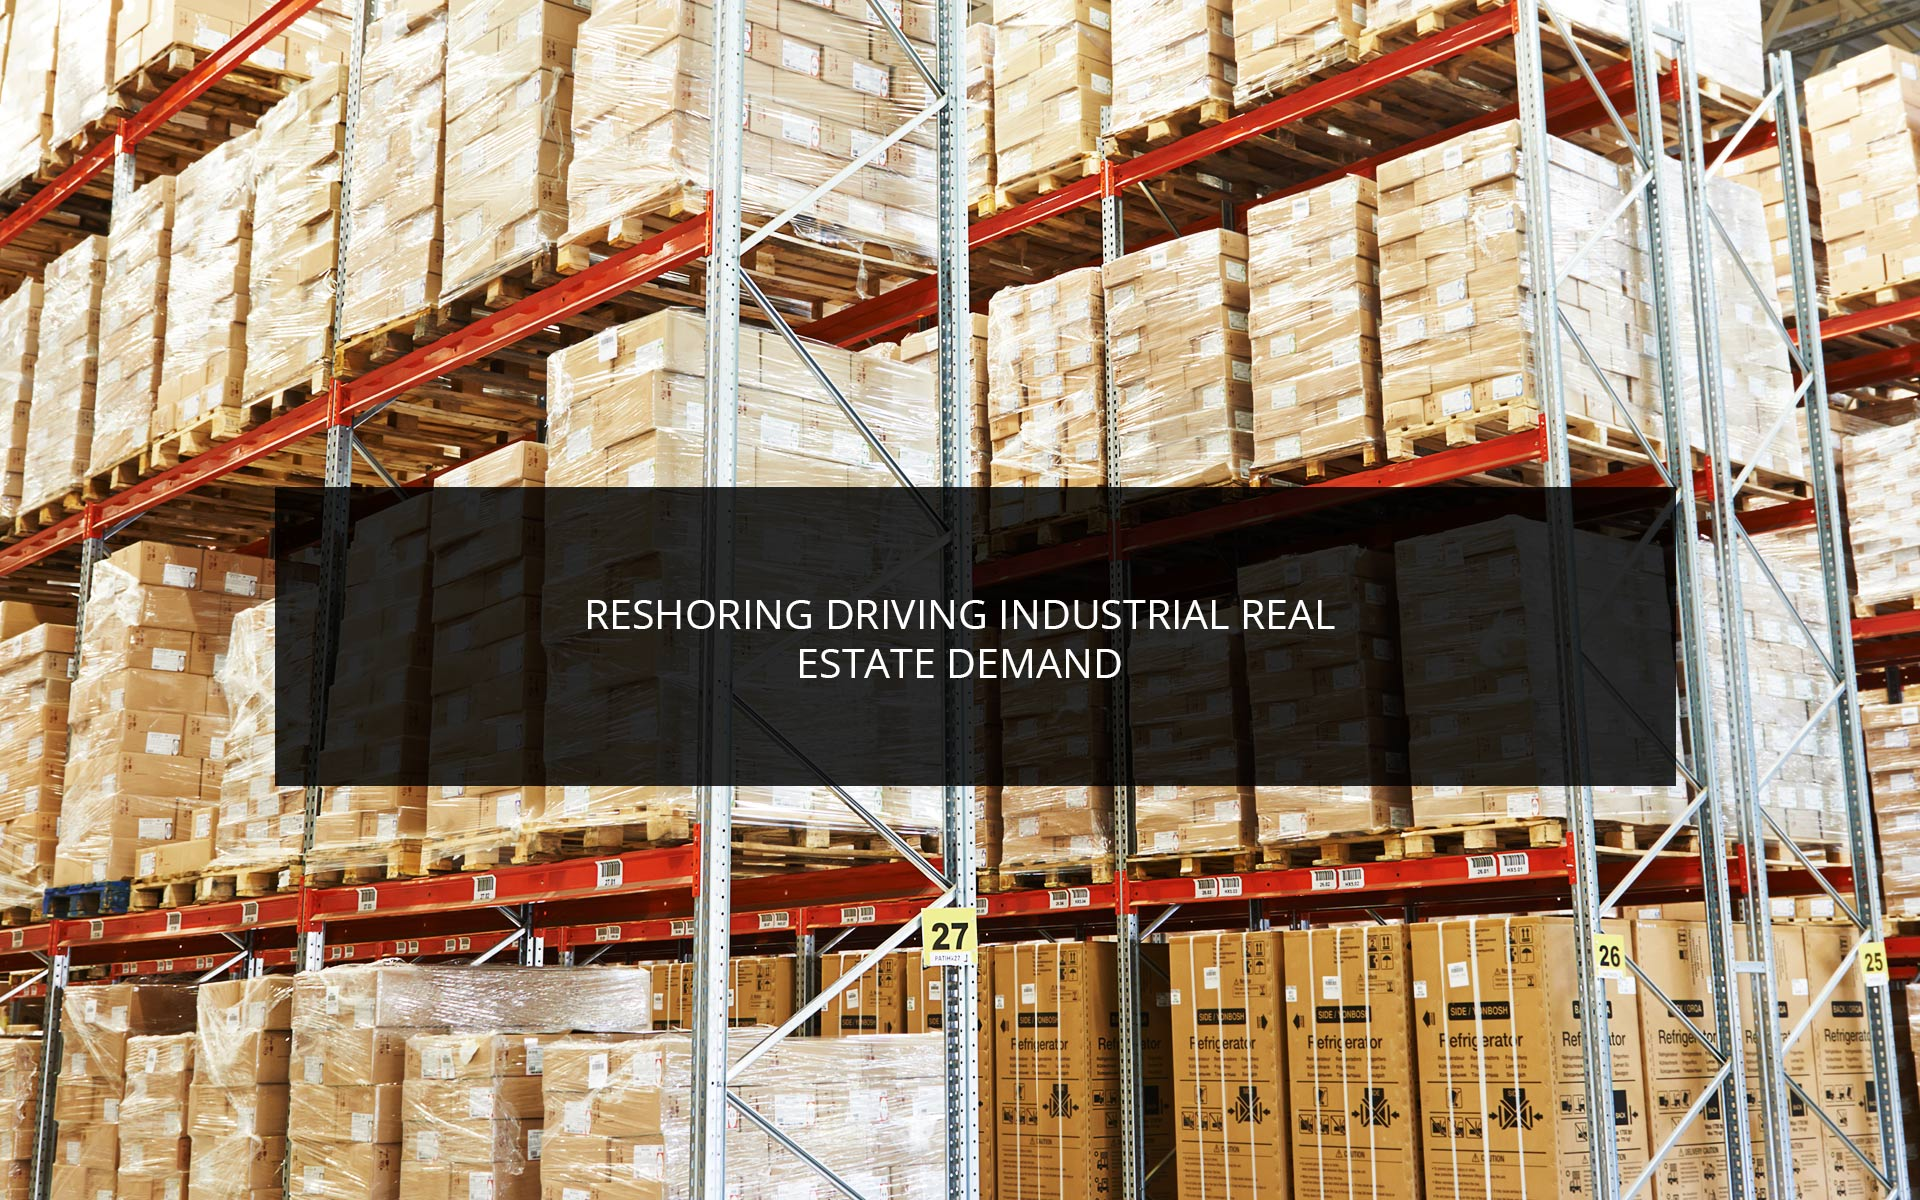 Reshoring-Driving-Industrial-Real-Estate-Demand